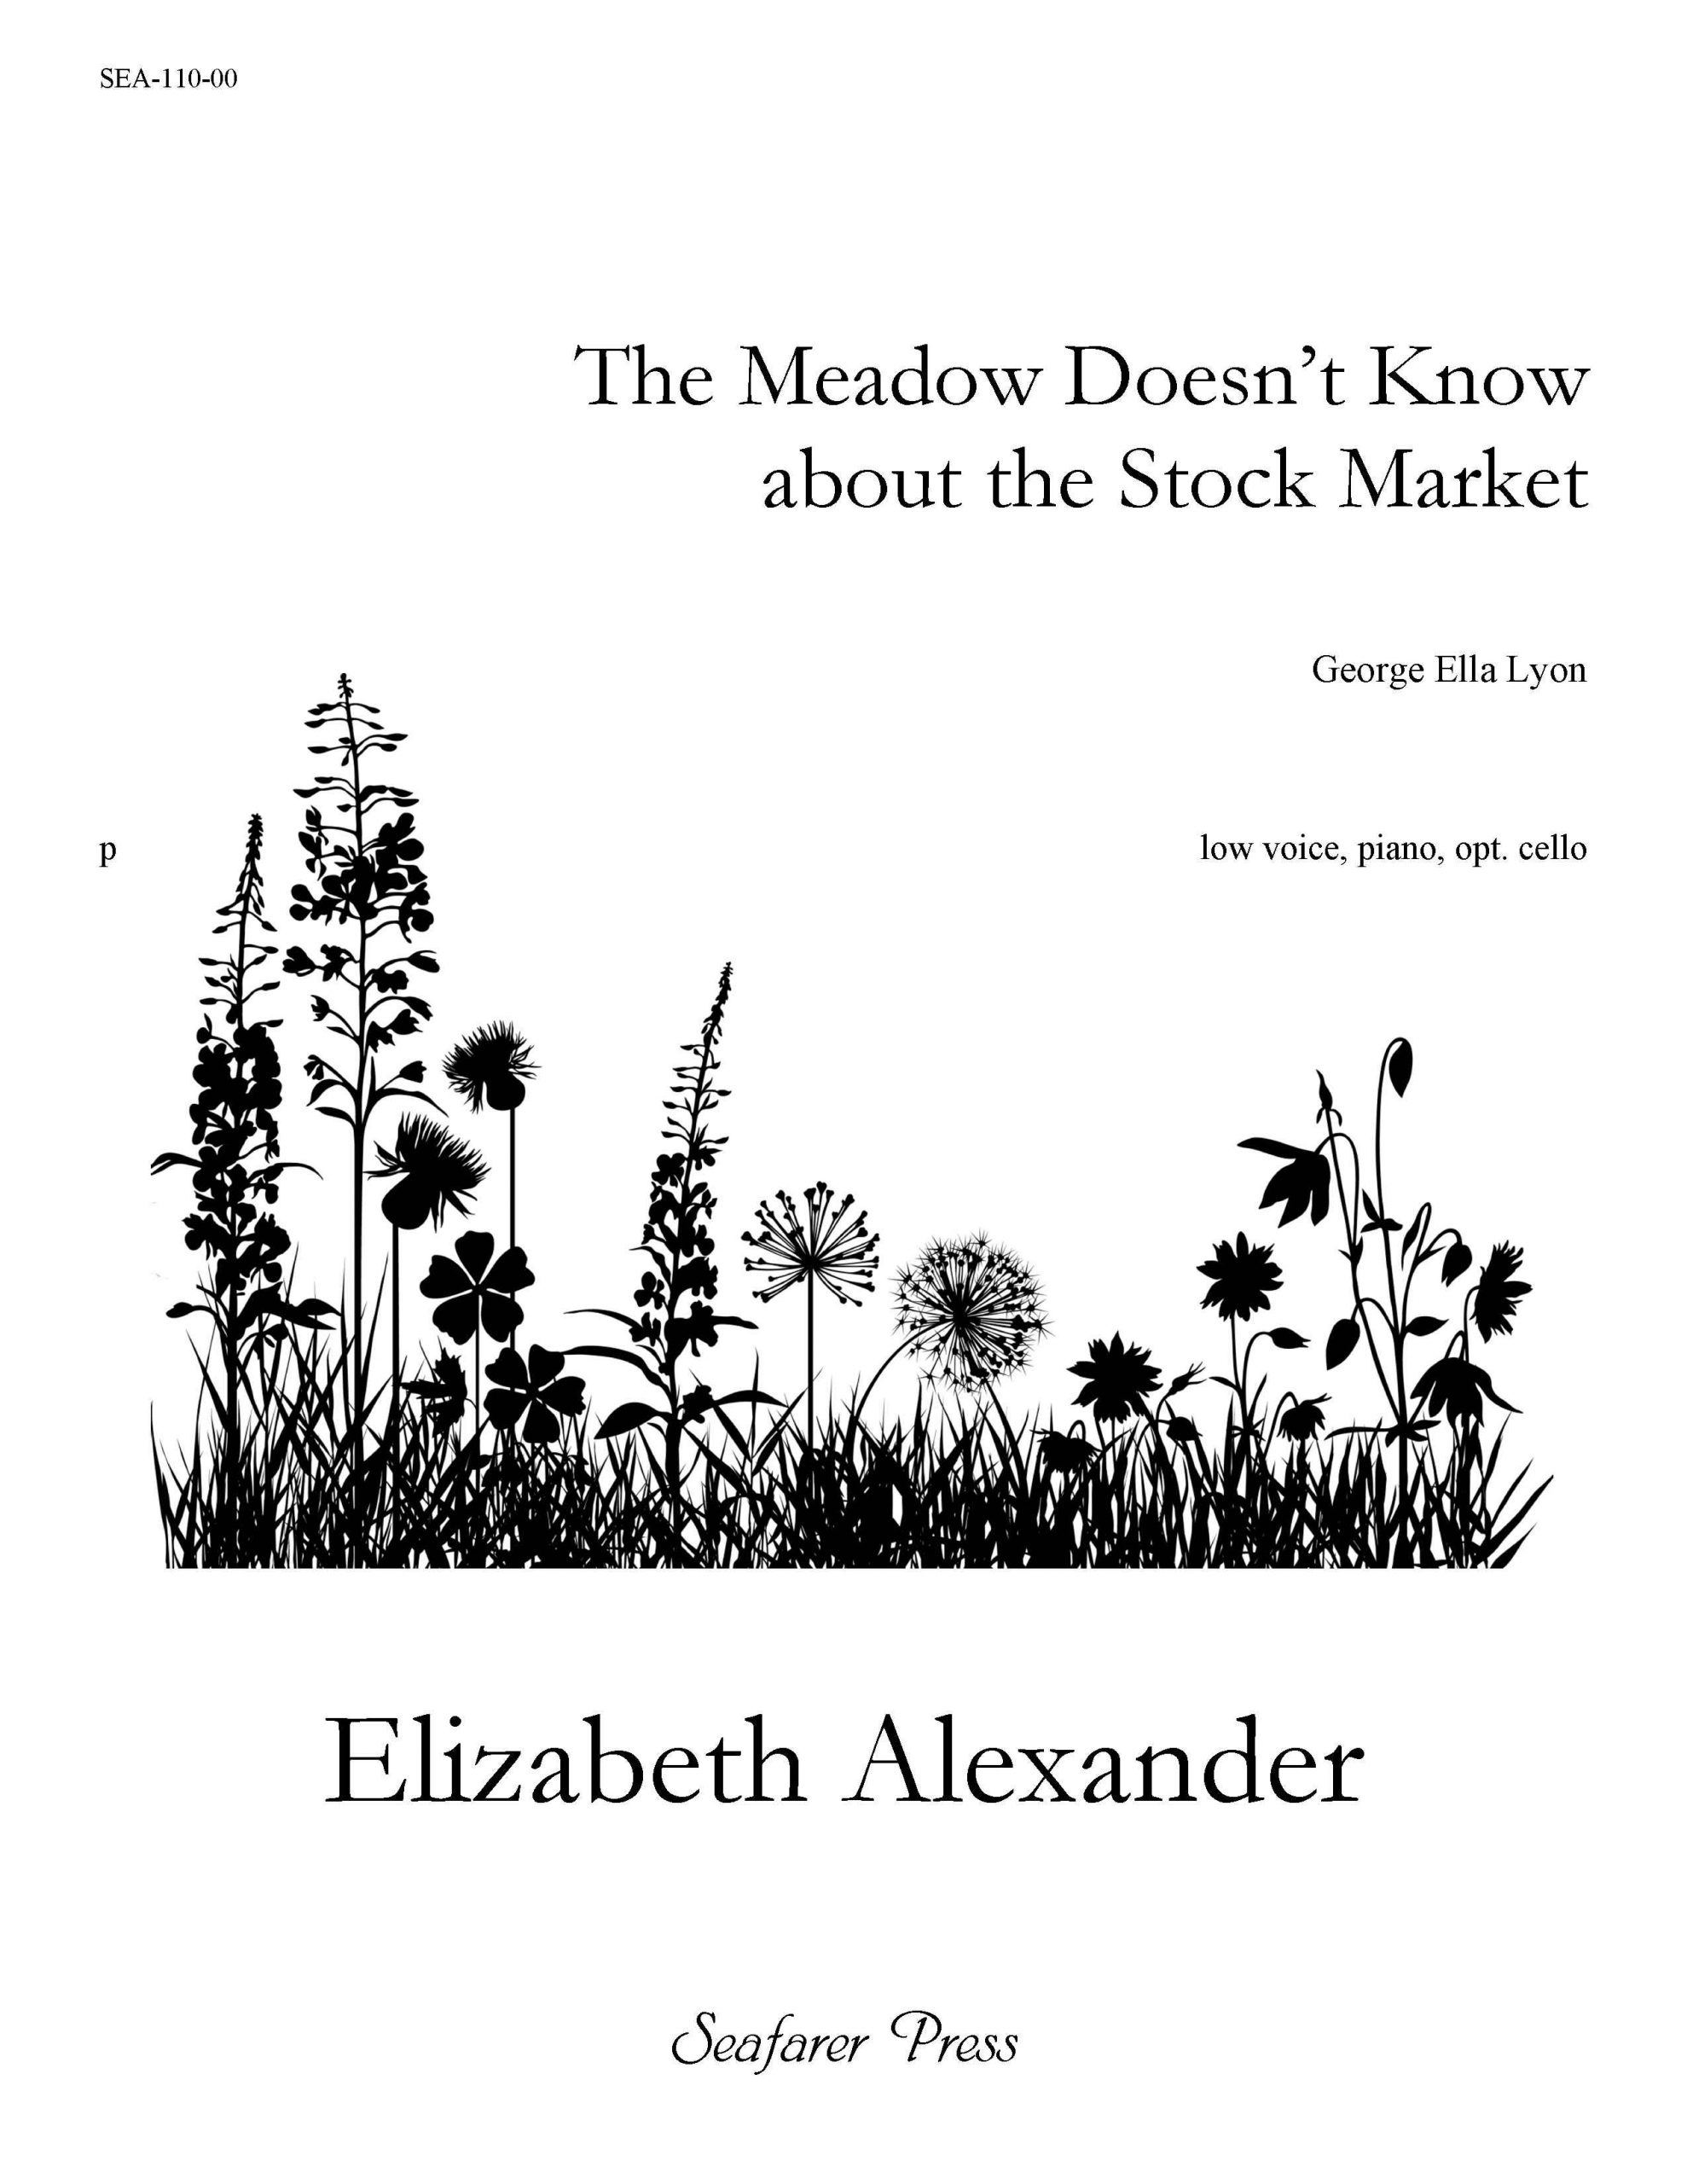 SEA-110-00 - The Meadow Doesn't Know About the Stock Market